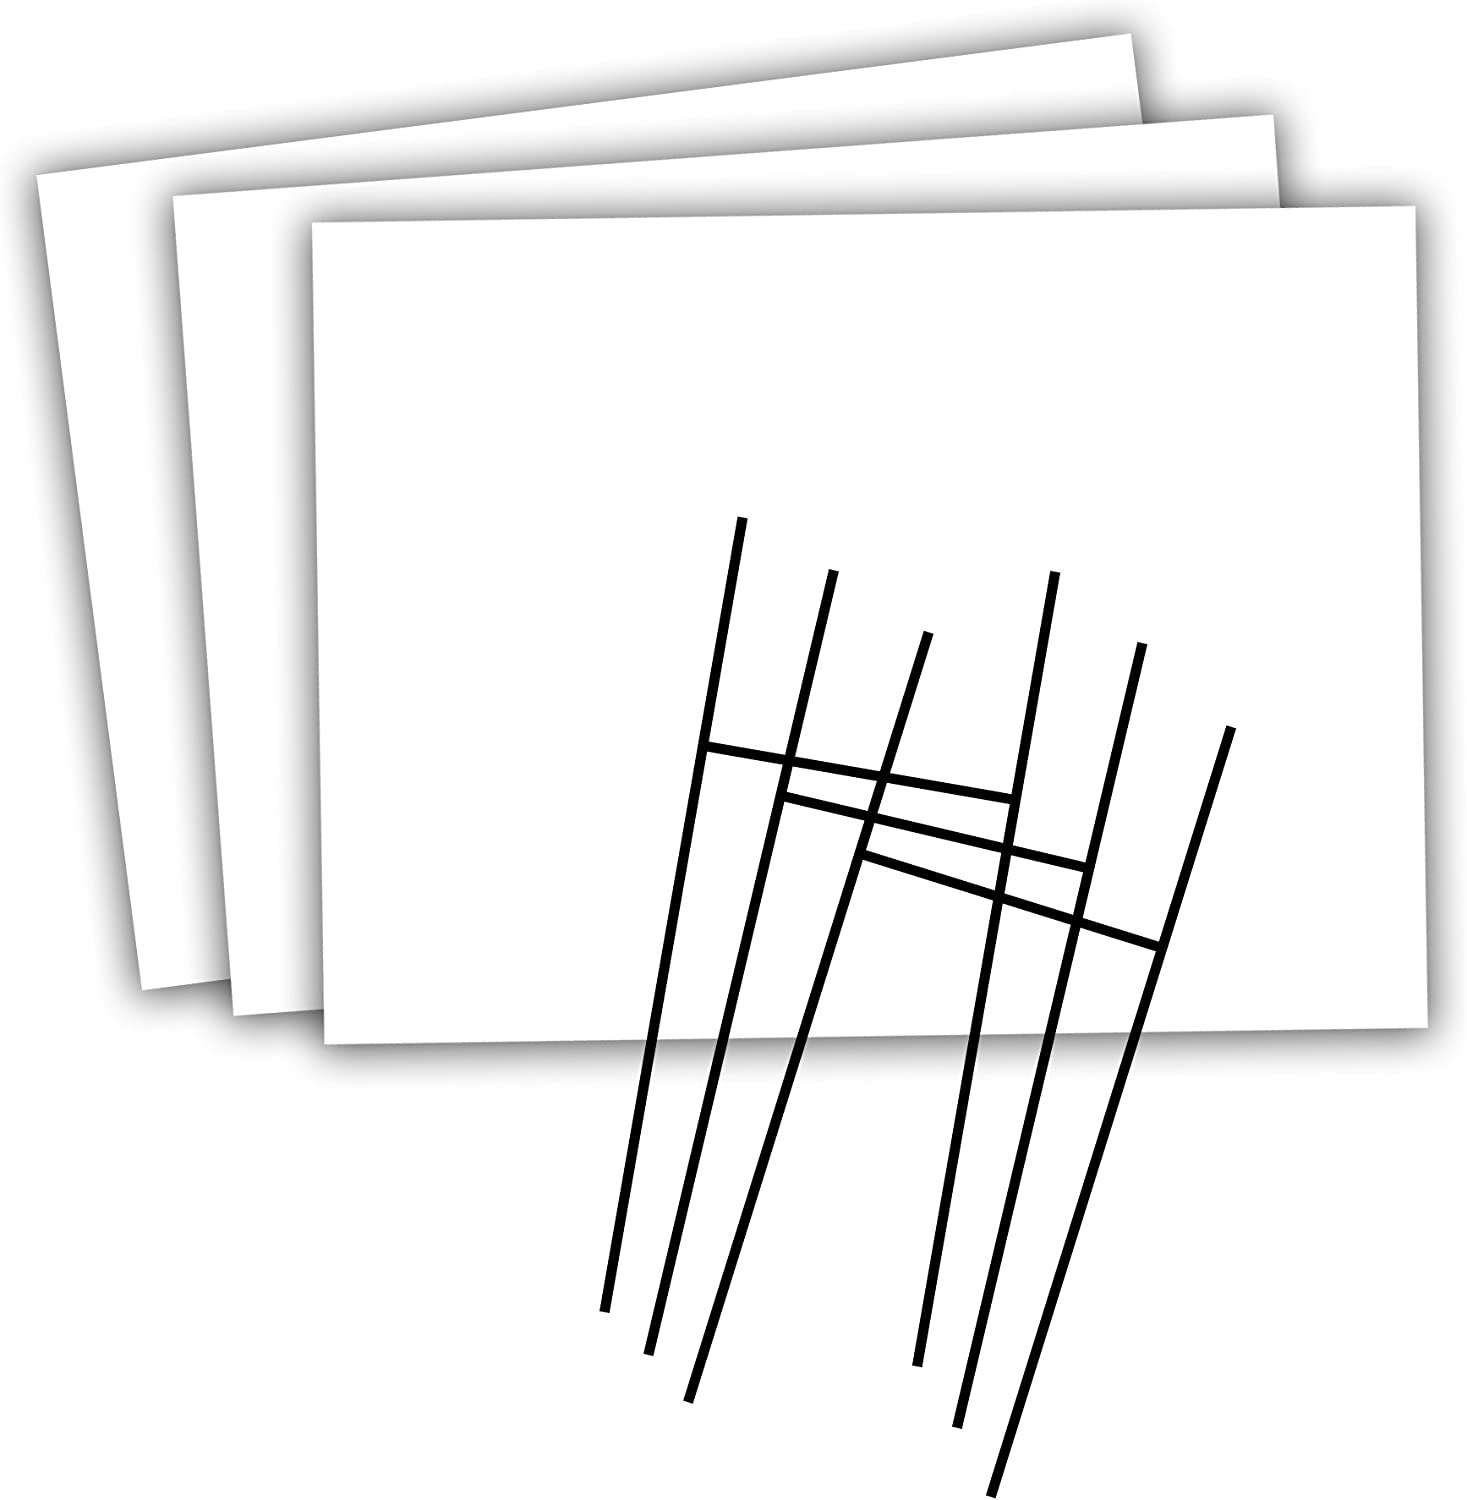 Headline Sign - Blank Yard Sign and H-Frame Ground Stake Sign Holder Set, White, 18 x 24 Inches, 3-Pack (5500)